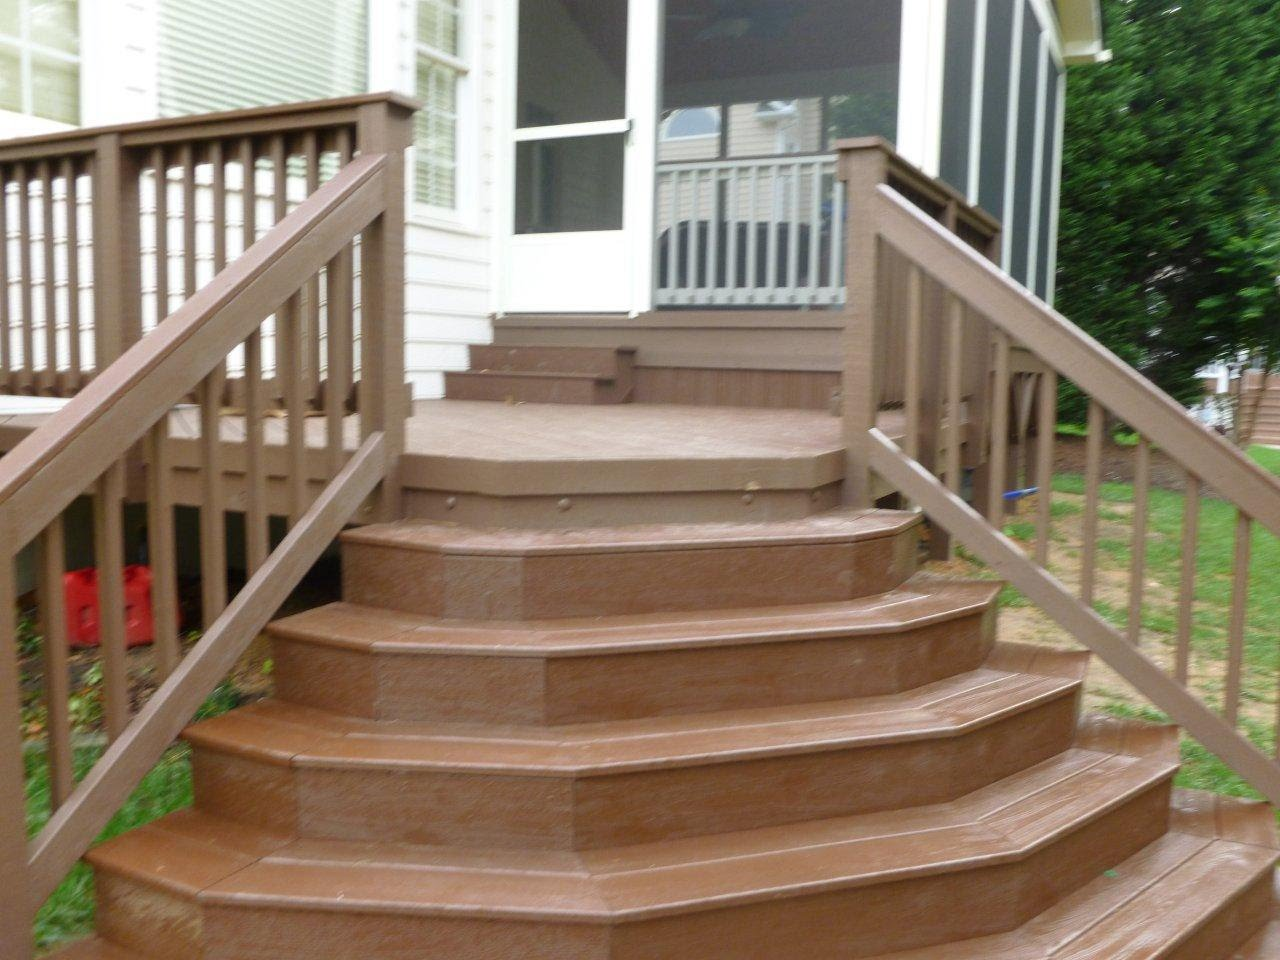 Handrails for Deck Stairs | Stair Stringer Size | Build Deck Stairs